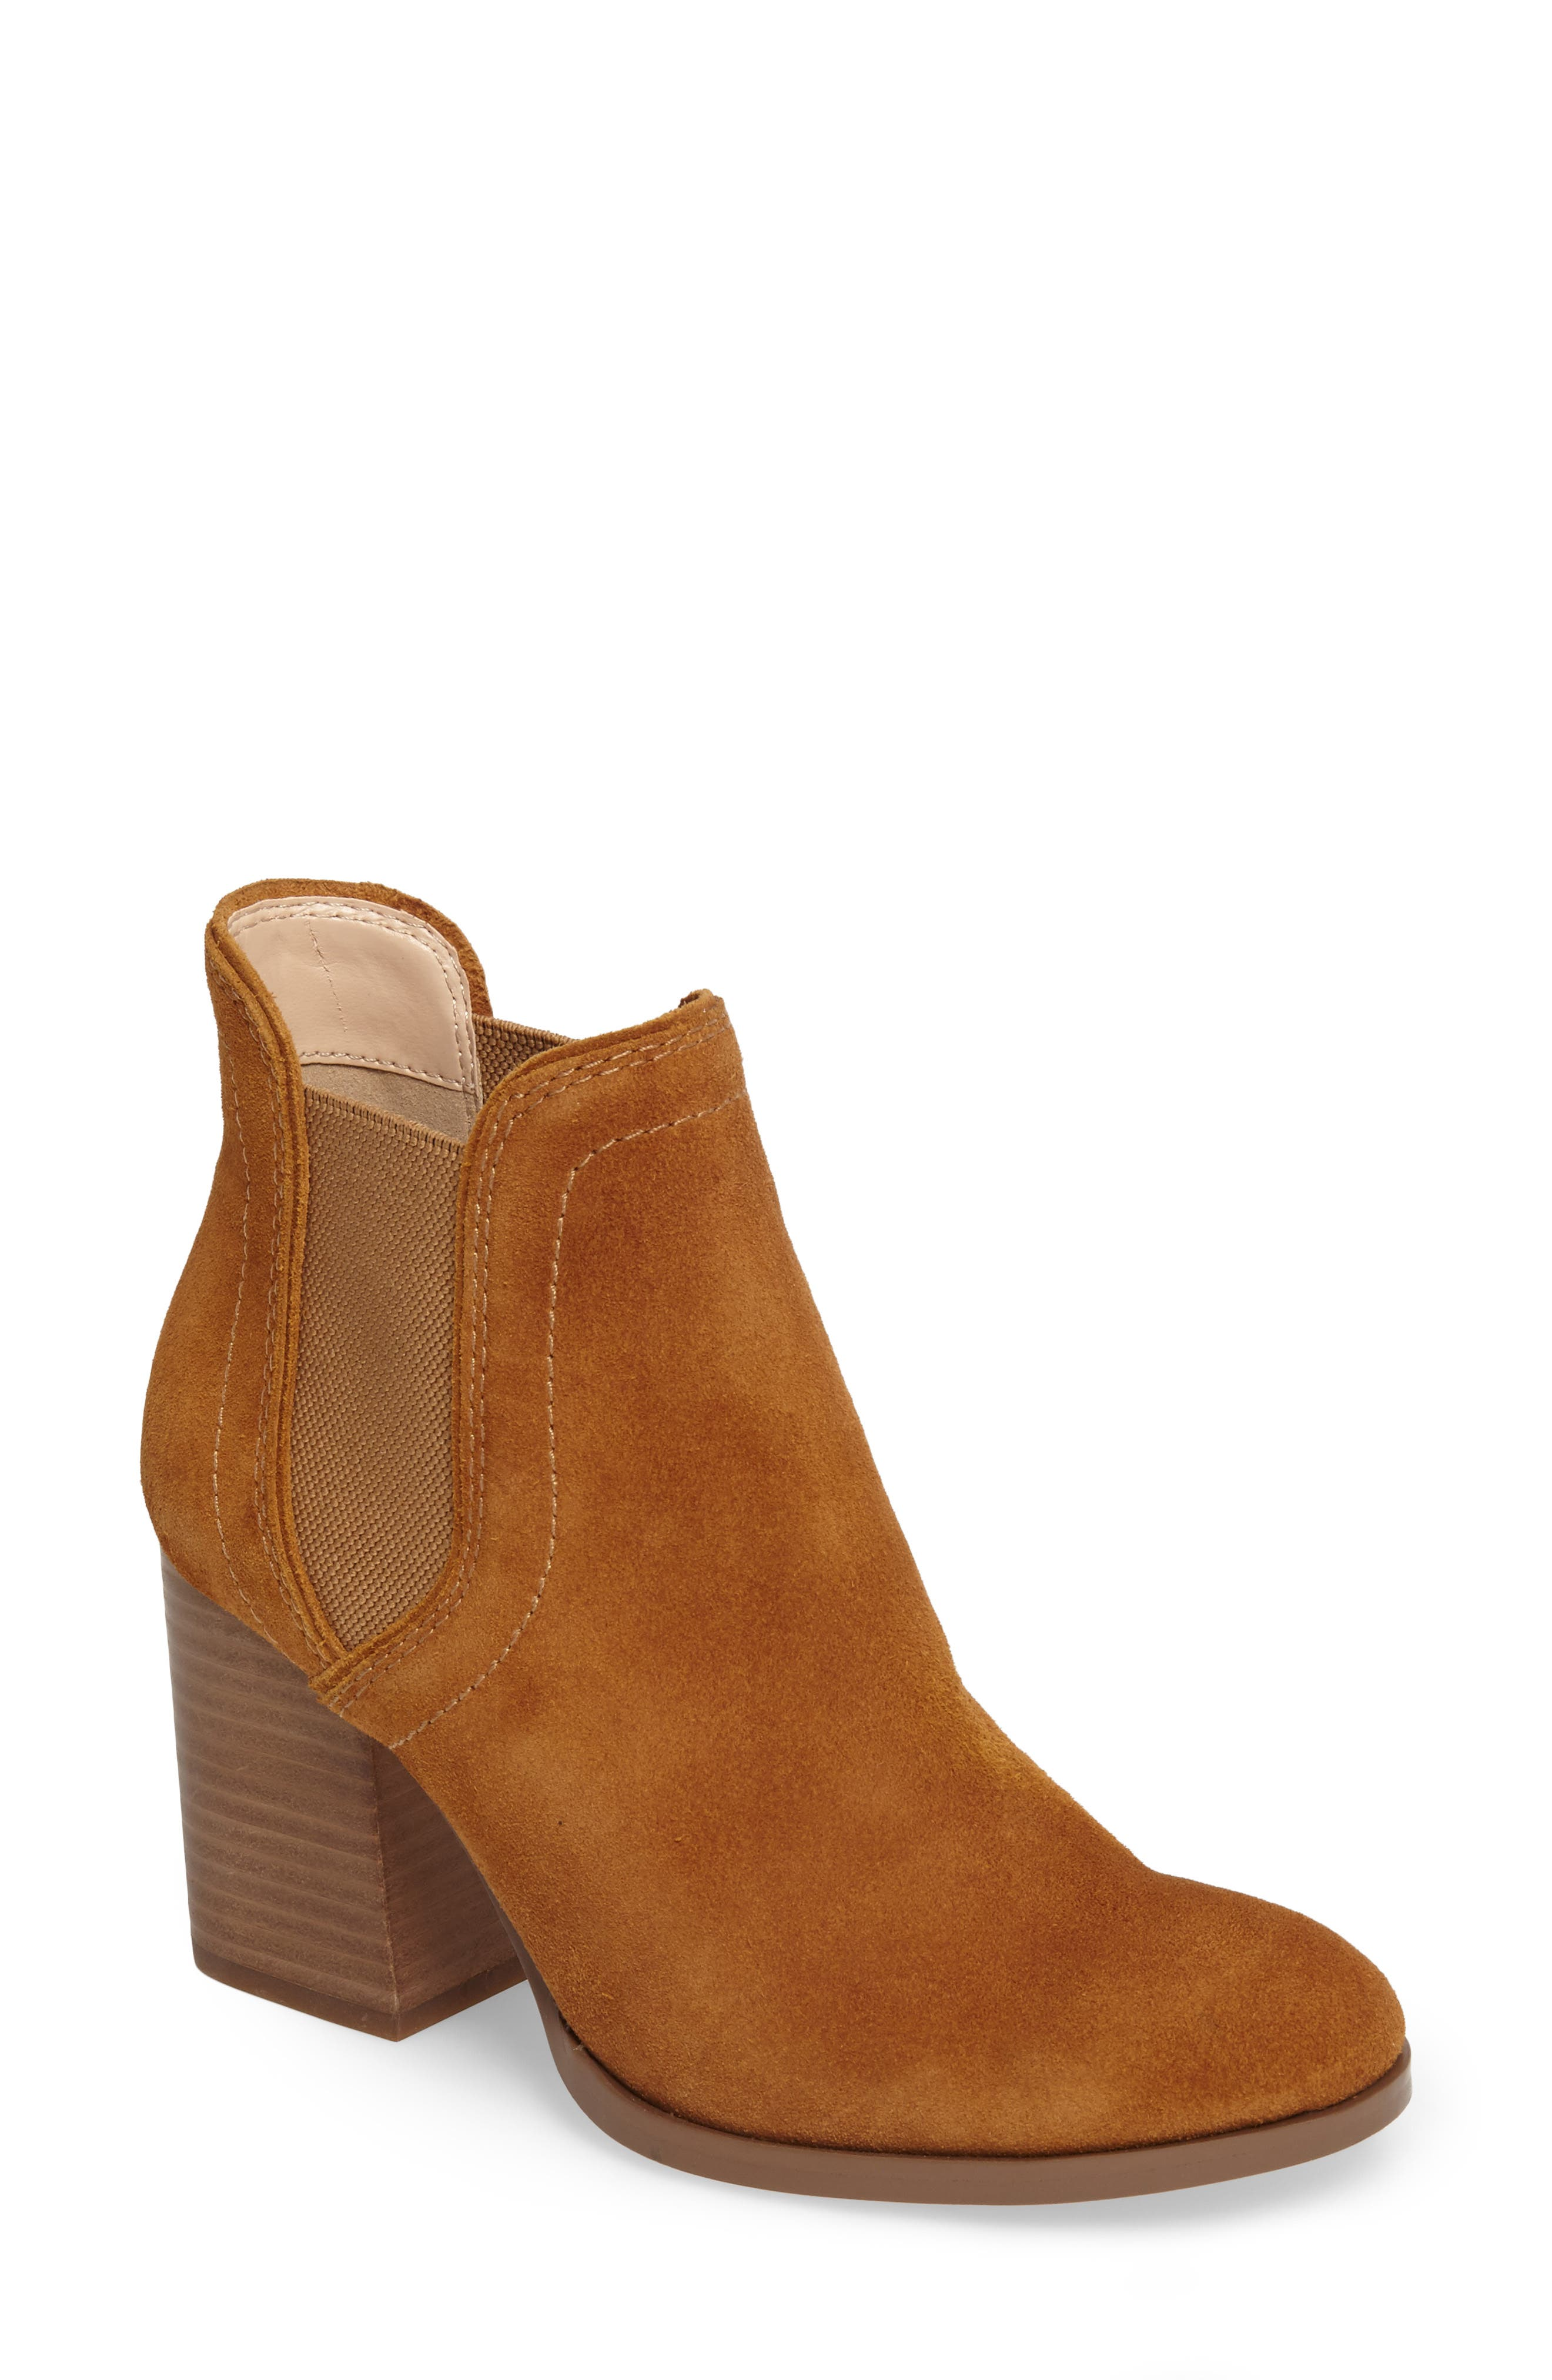 Main Image - Sole Society Carrillo Bootie (Women)